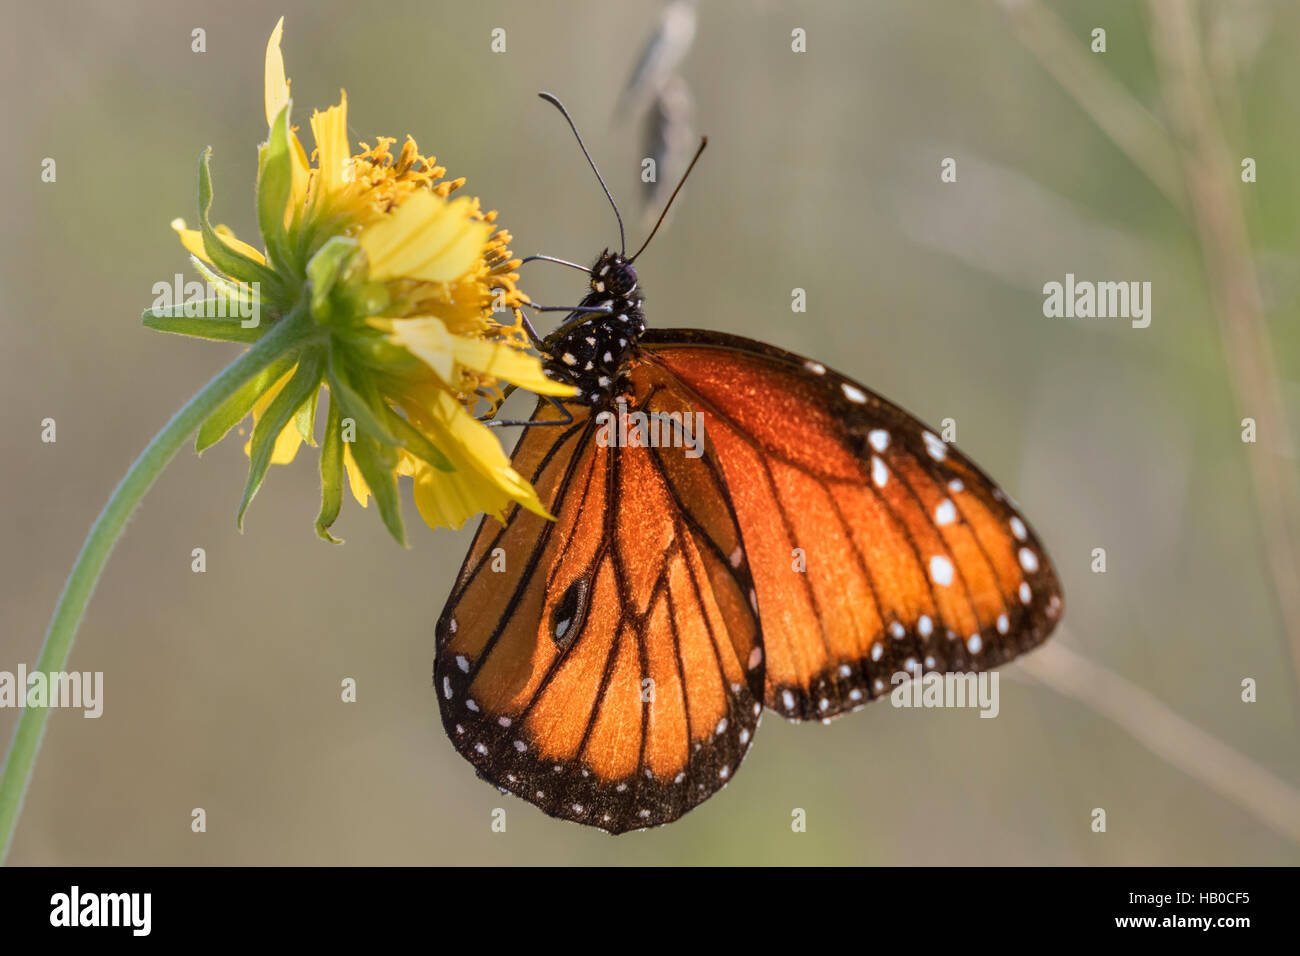 Queen butterfly (Danaus gilippus) feeding in a sunny meadow, Aransas, Texas, USA - Stock Image